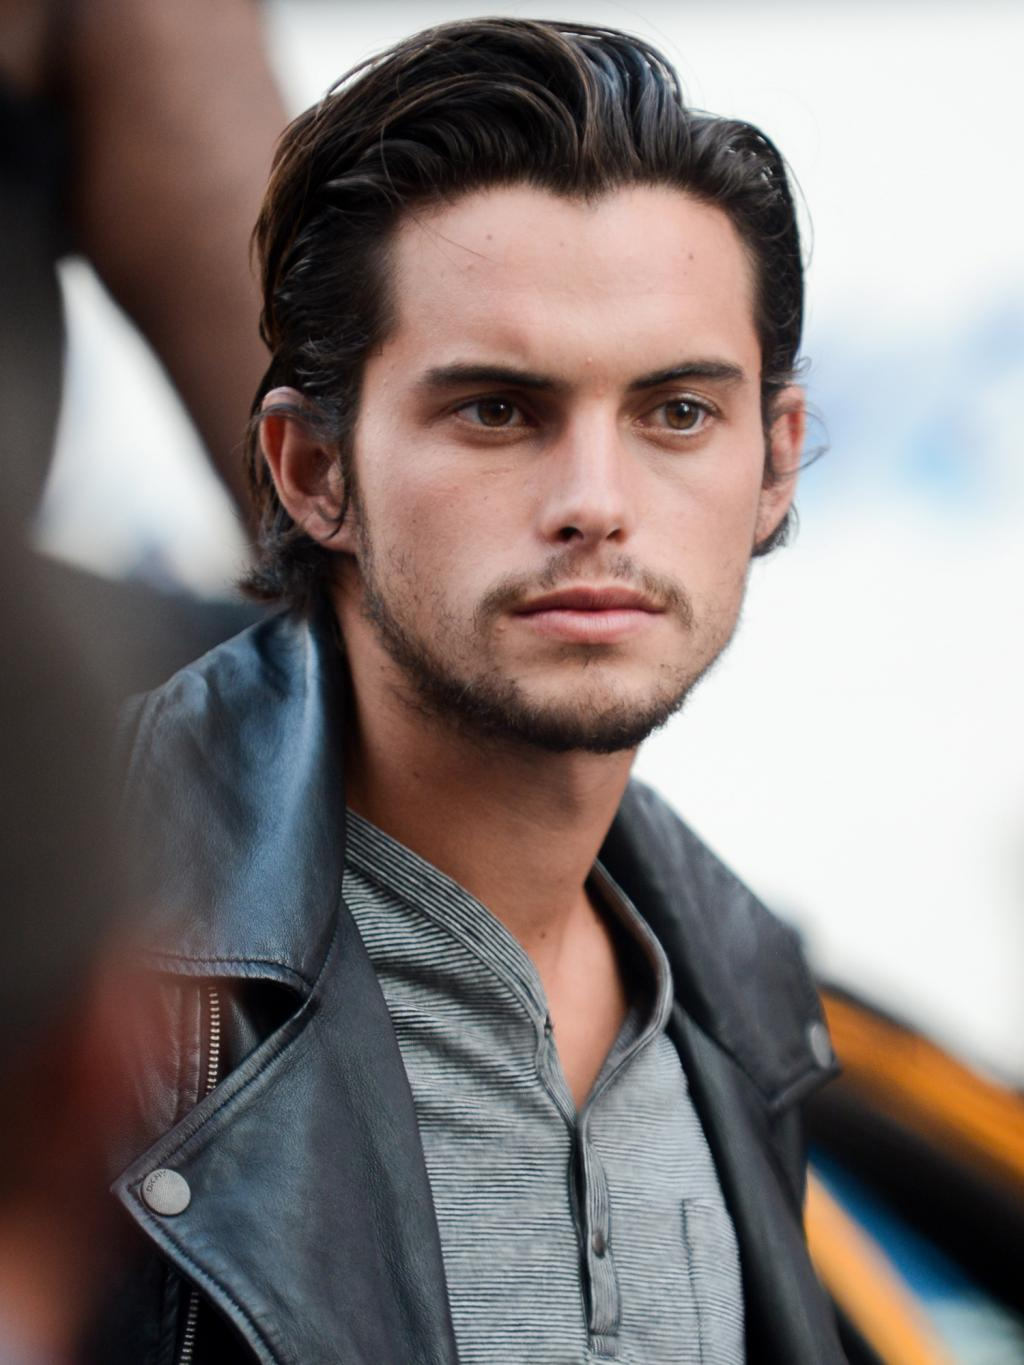 Pro Skateboarder and Model Dylan Rieder Dies at 28 Due to Complications from Leukemia